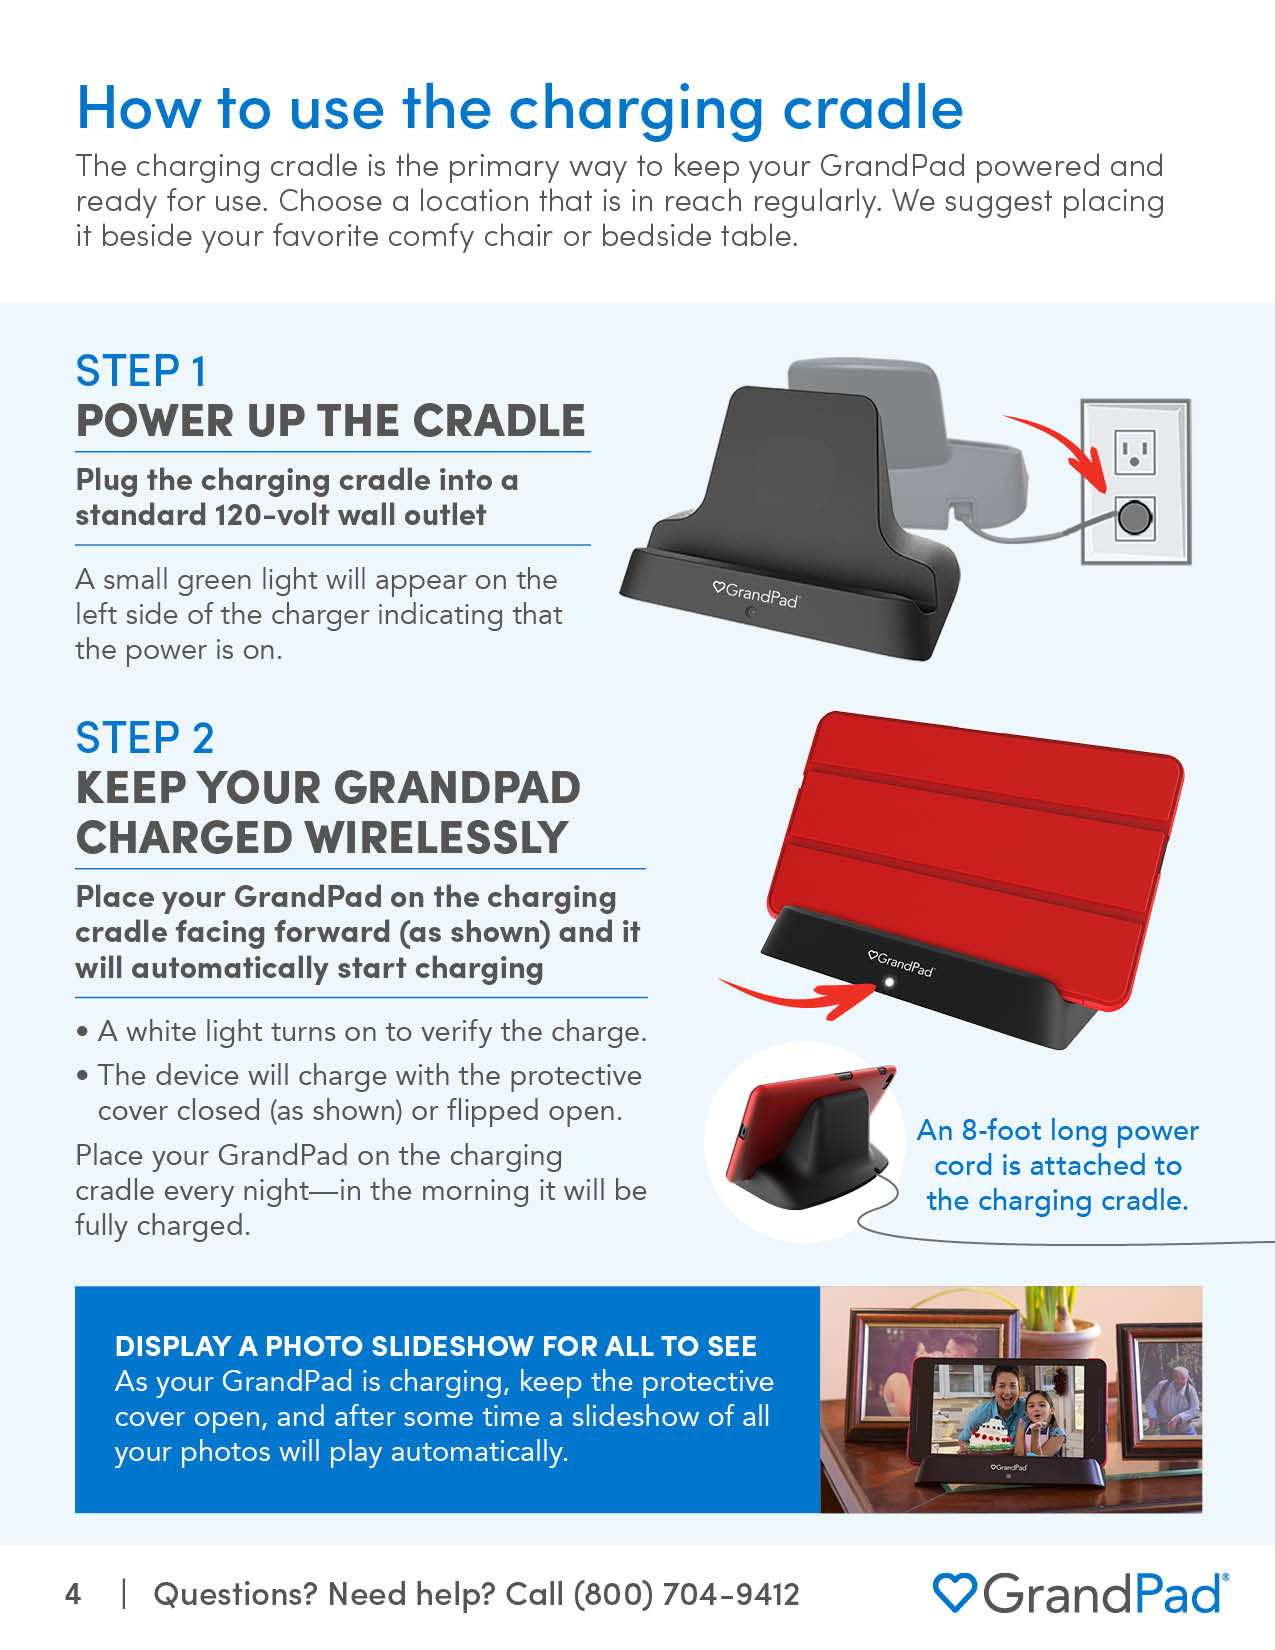 Instructions on how to use the charging cradle